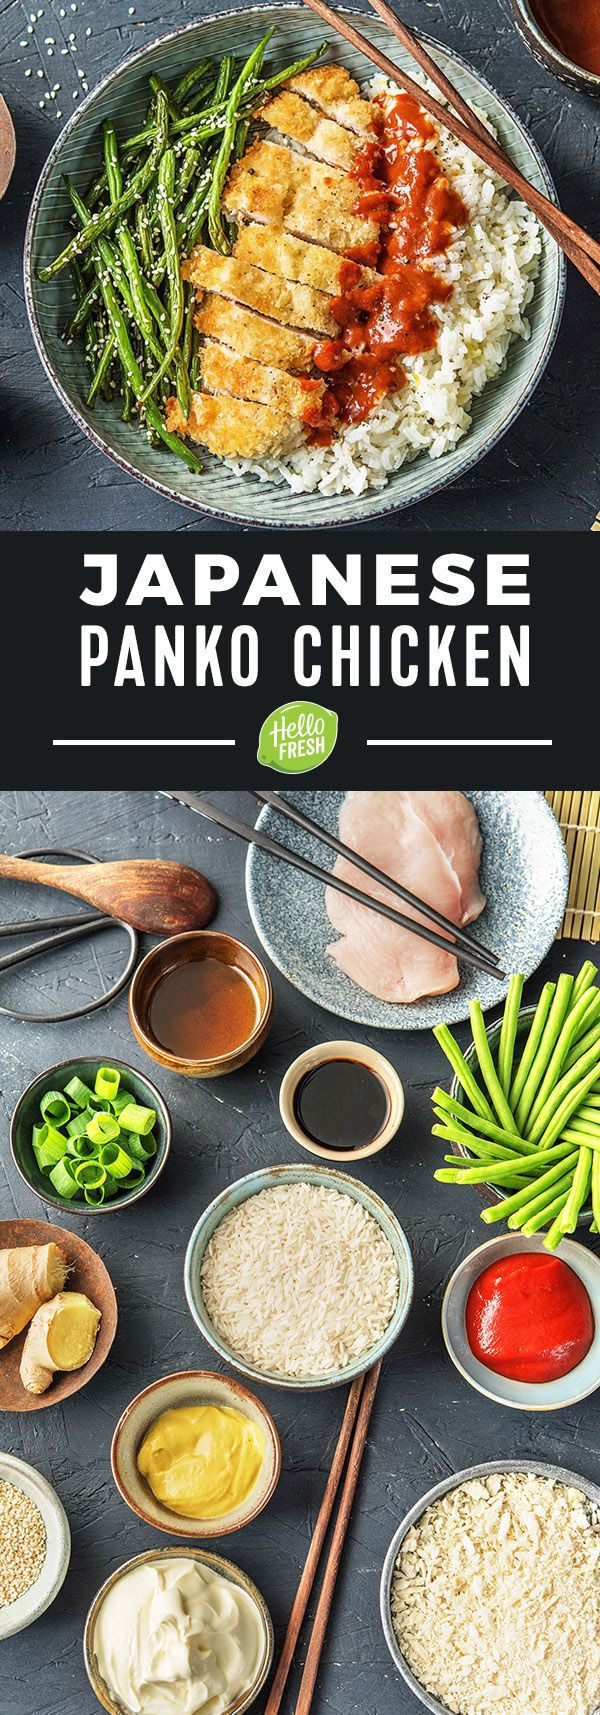 Japanese Panko Chicken with Sesame Green Beans and Tonkatsu-Style Sauce | More easy Asian-inspired chicken recipes on hellofresh.com